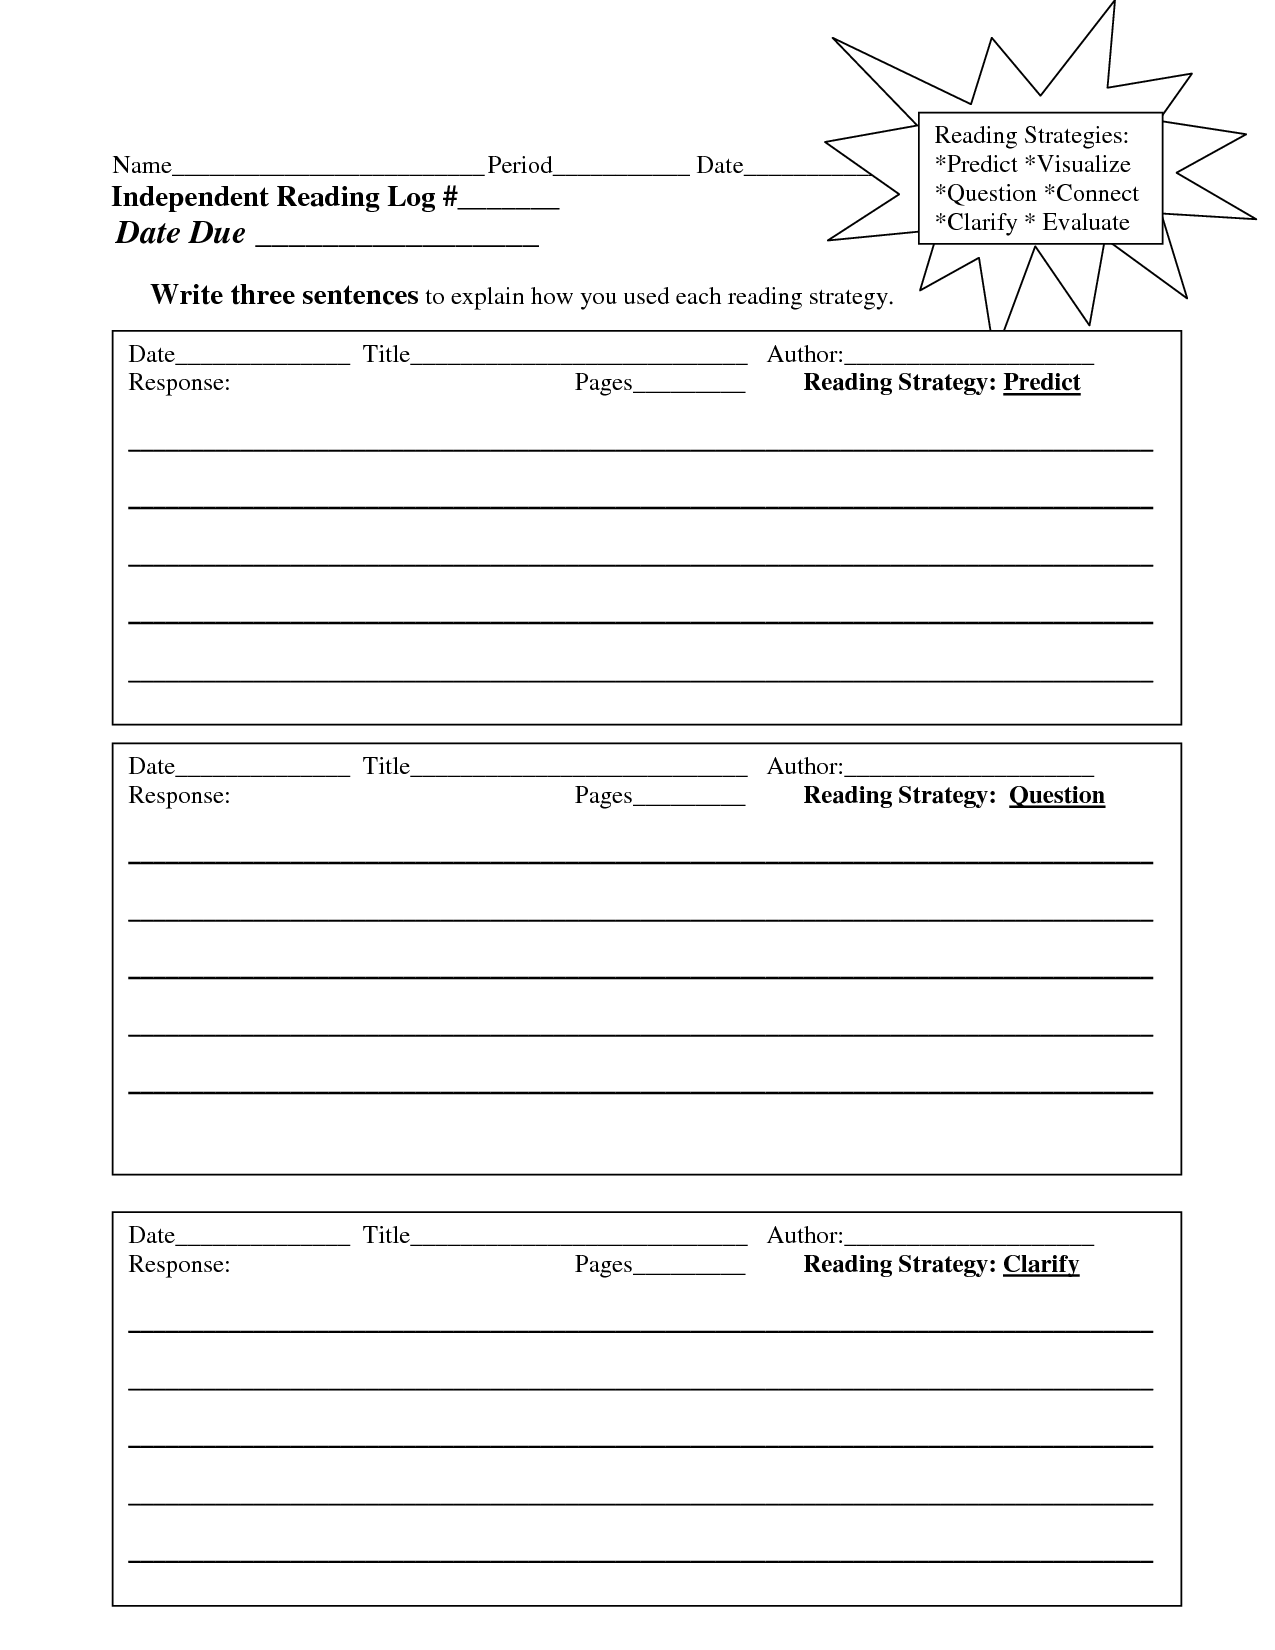 worksheet Reading Log Worksheets daily reading log template education pinterest logs template